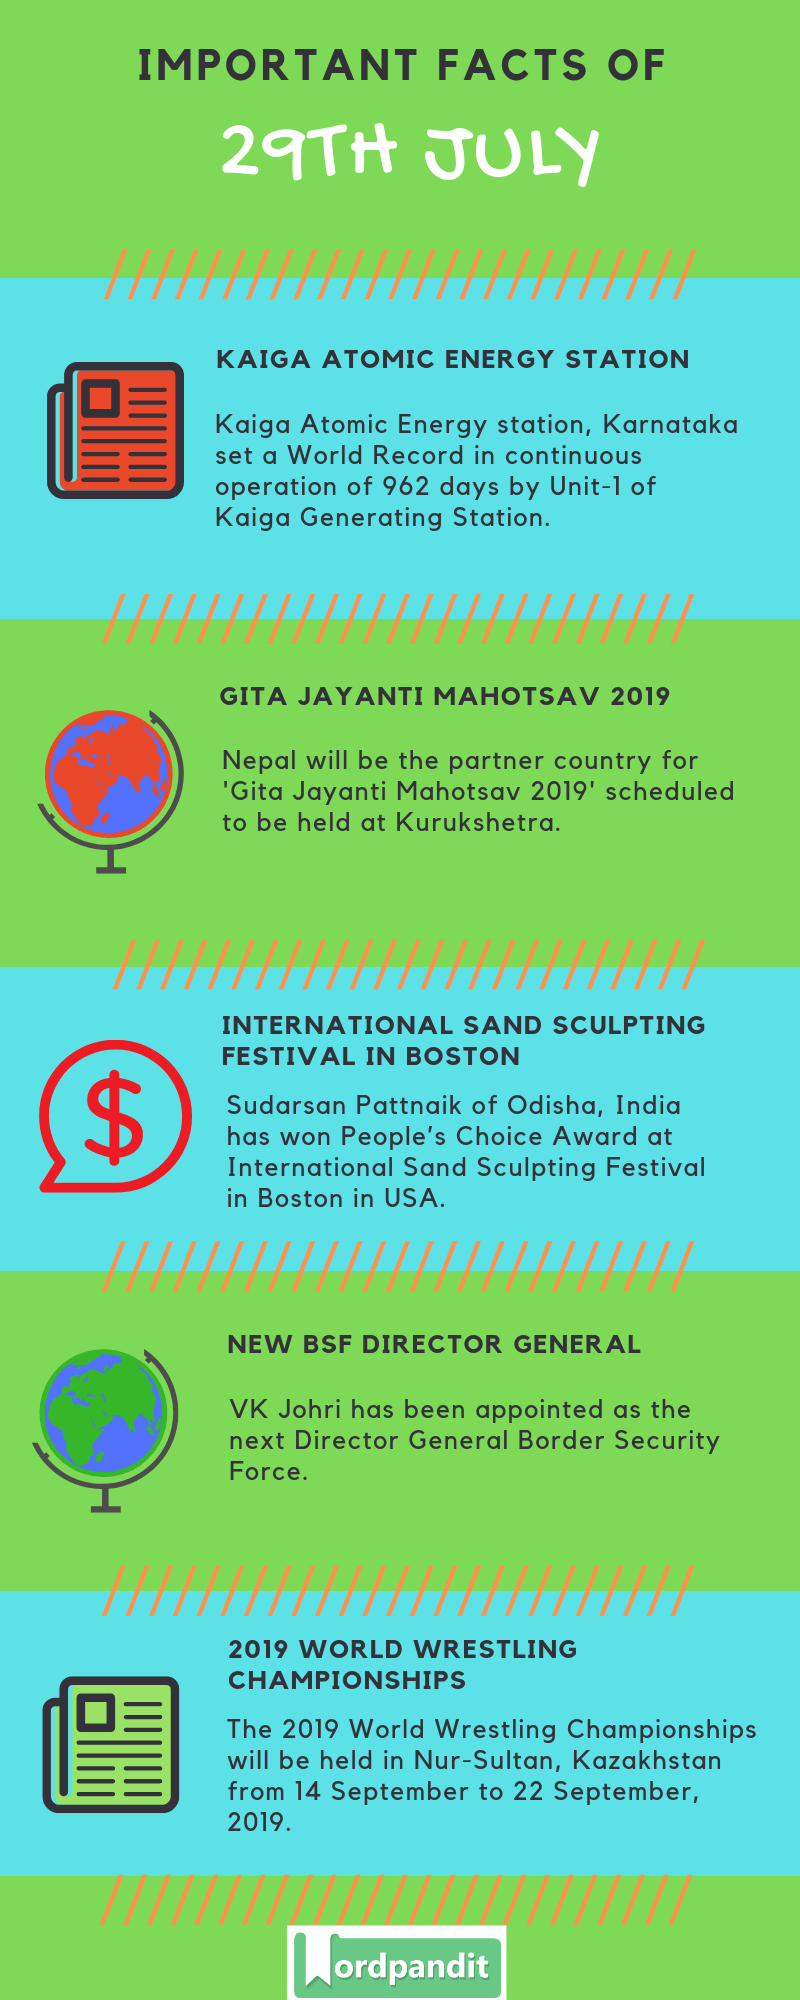 Daily Current Affairs 29 July 2019 Current Affairs Quiz 29 July 2019 Current Affairs Infographic